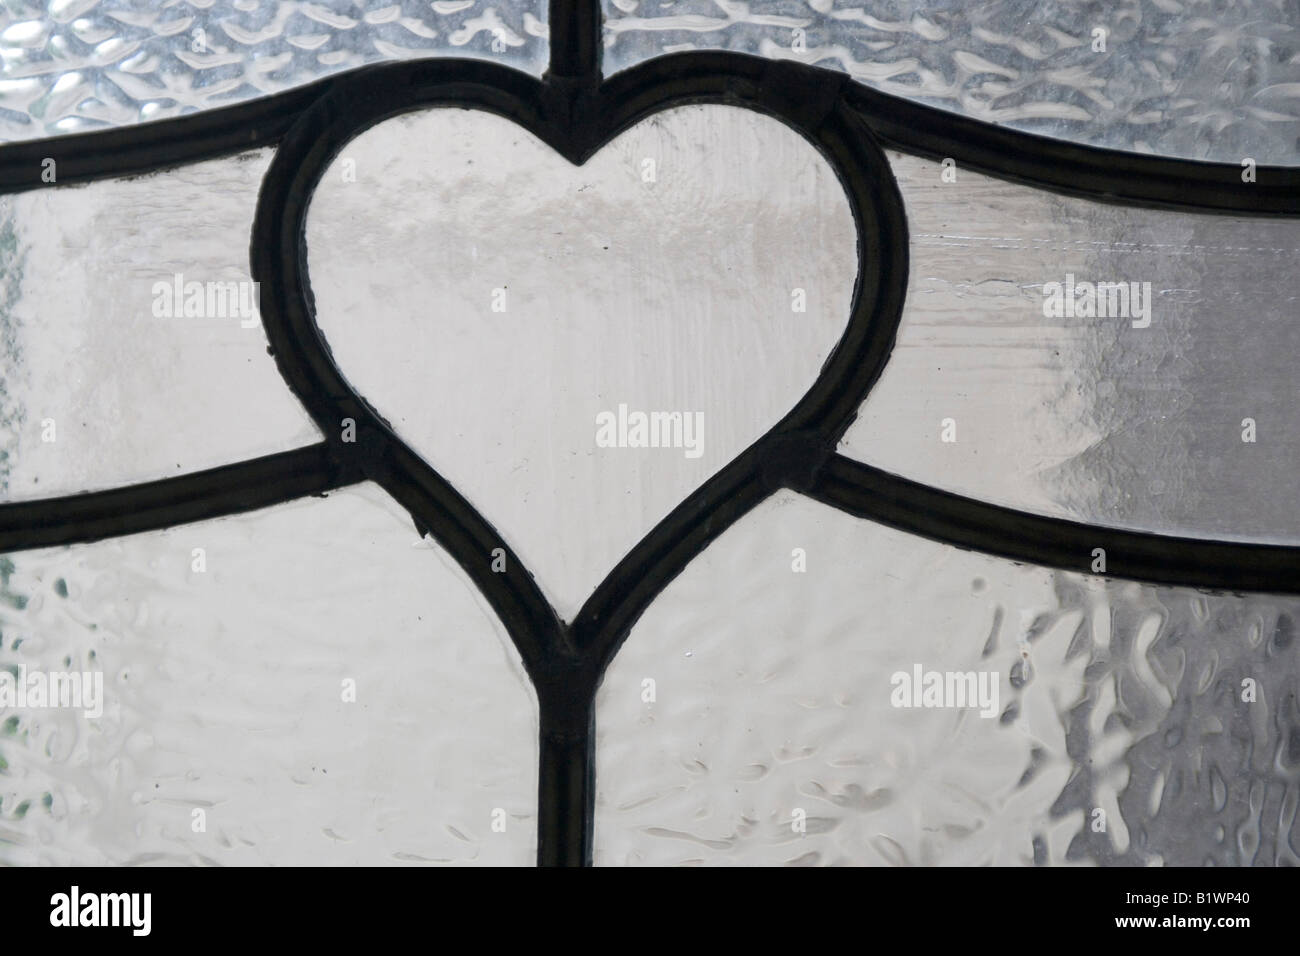 A heart-shaped detail in lead came. - Stock Image